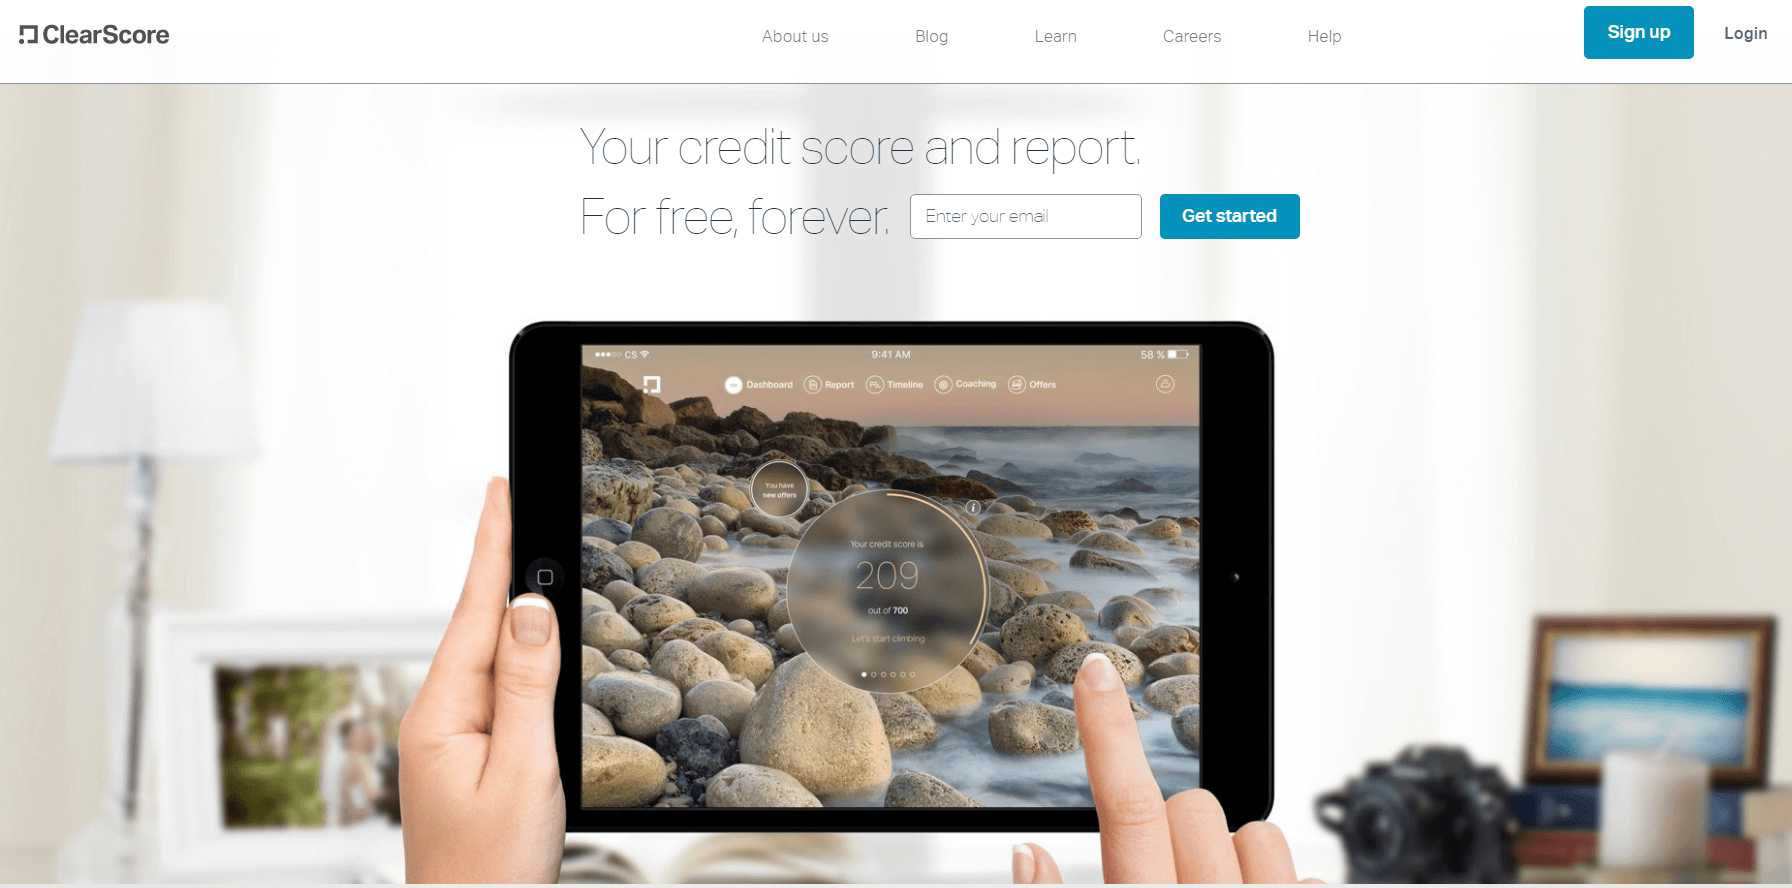 ClearScore homepage